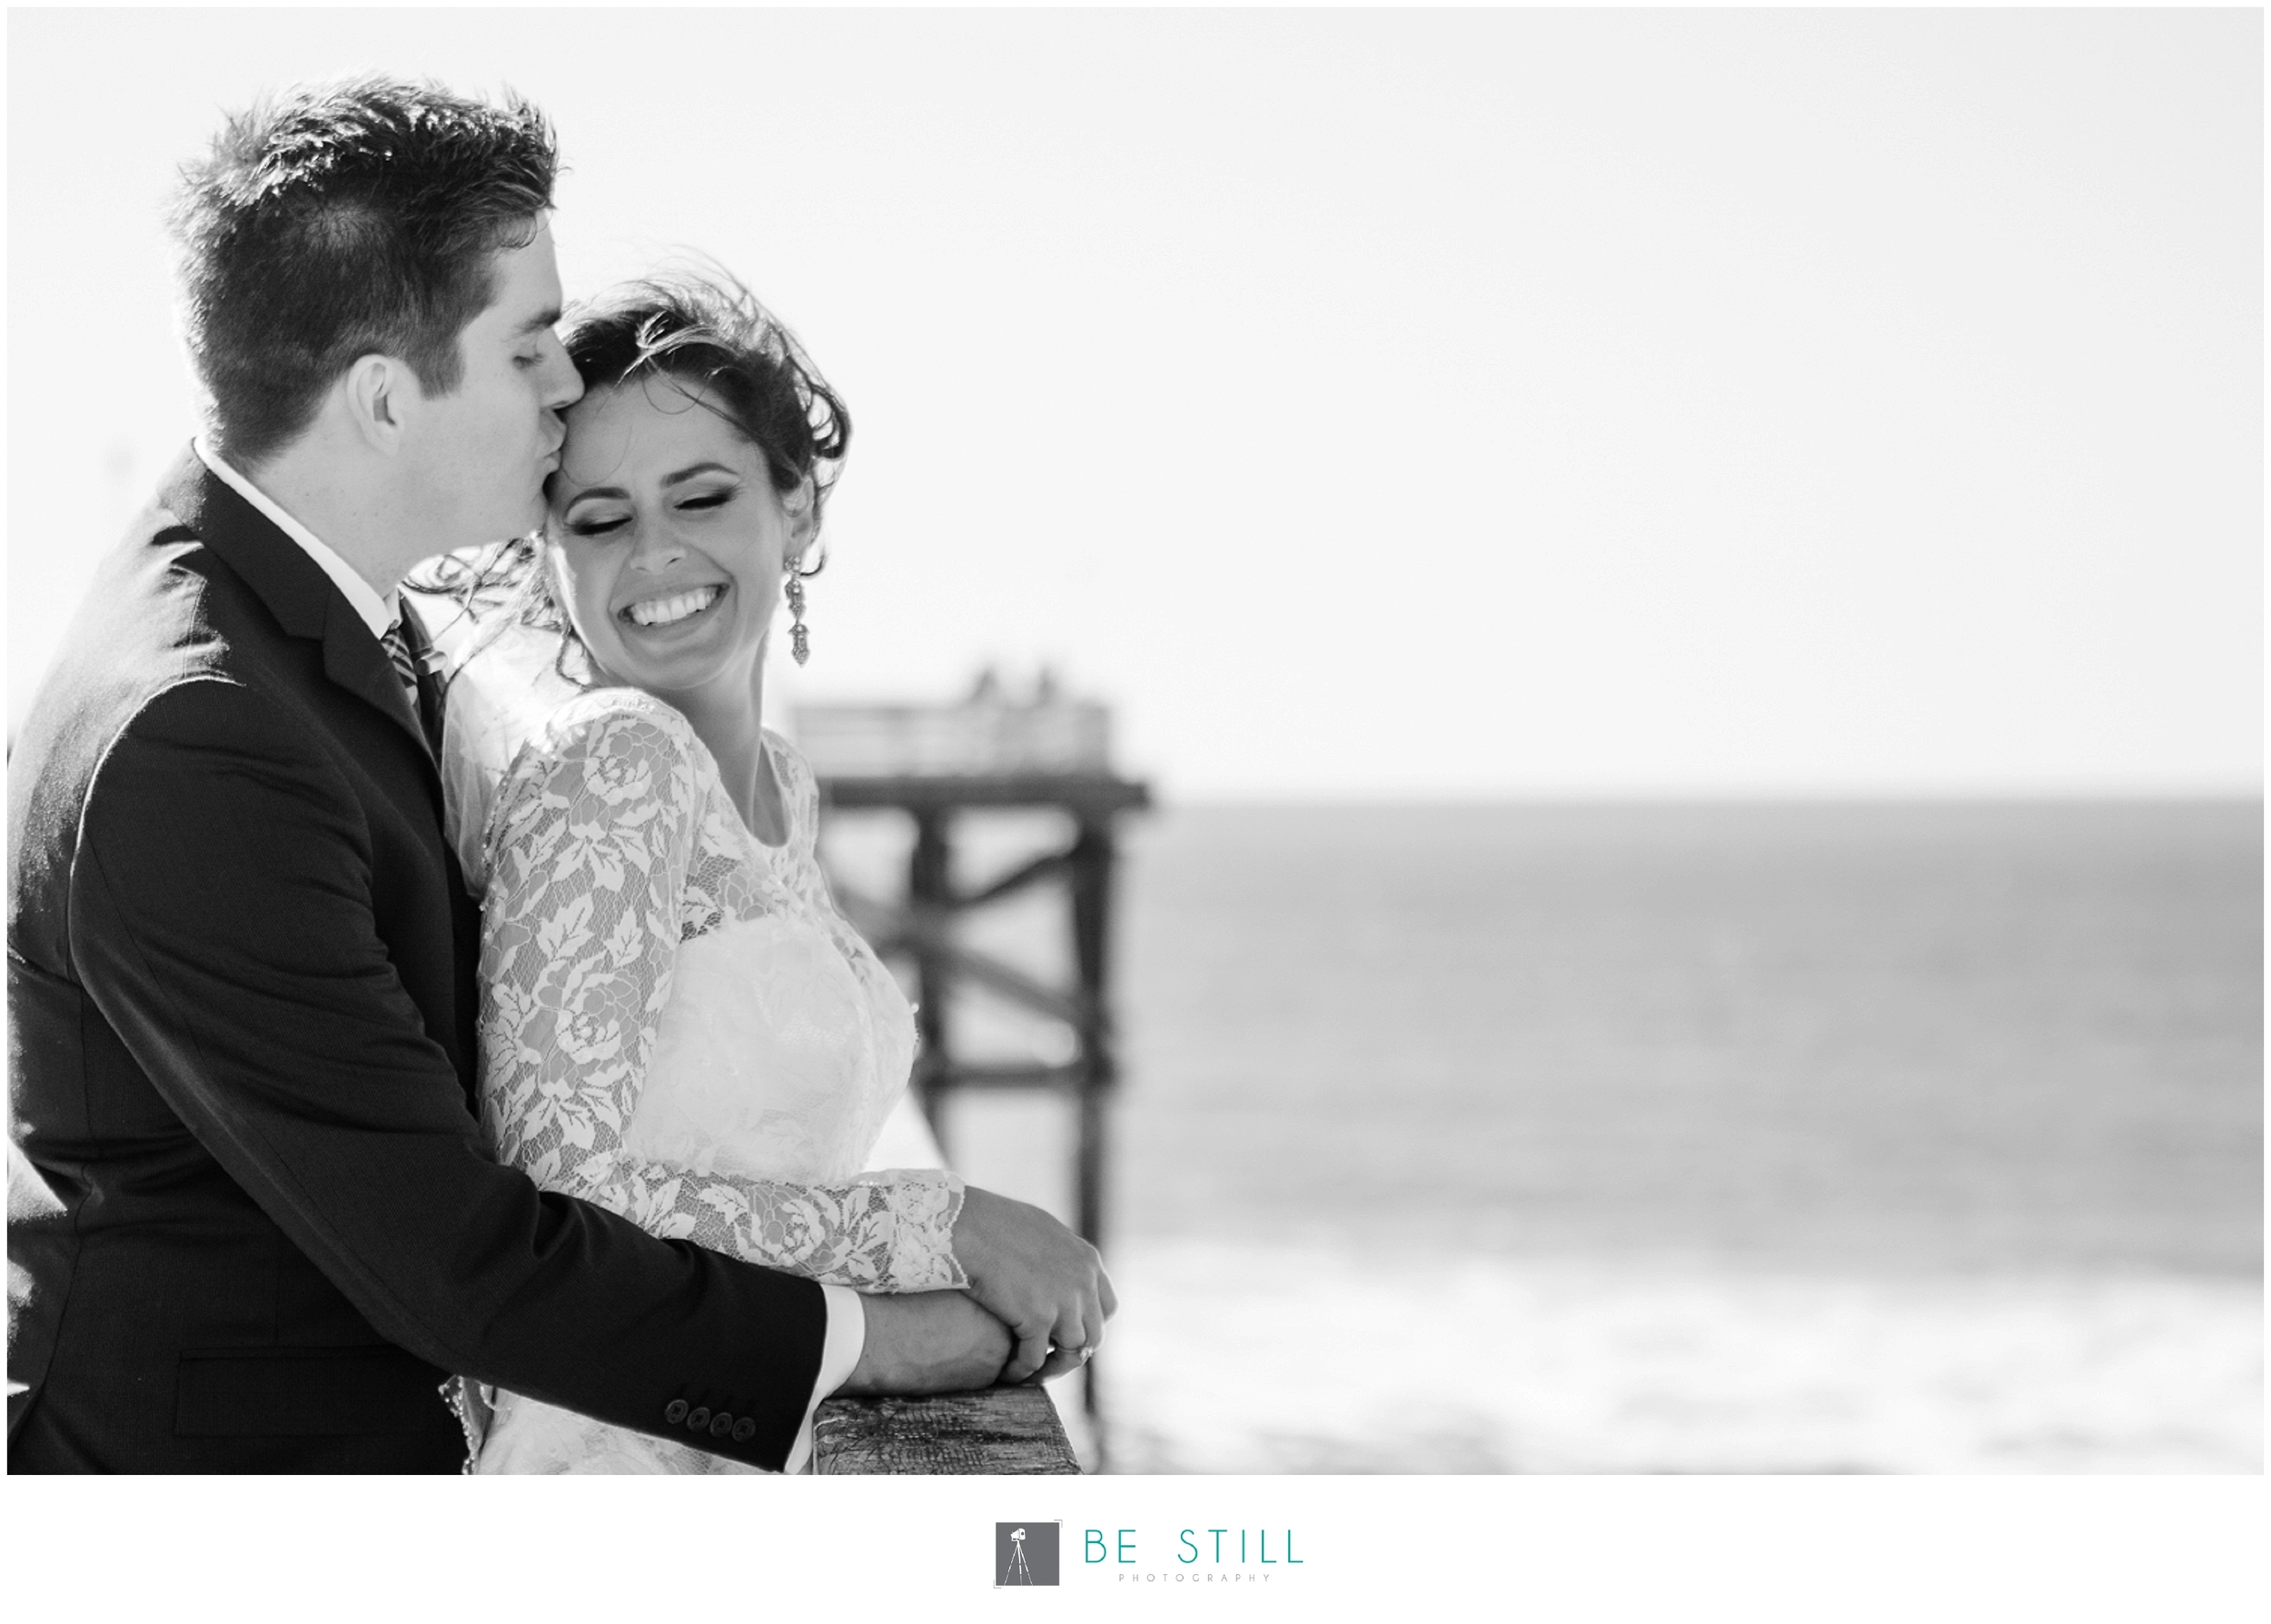 Be Still Photog San Diego Wedding Photographer_0158